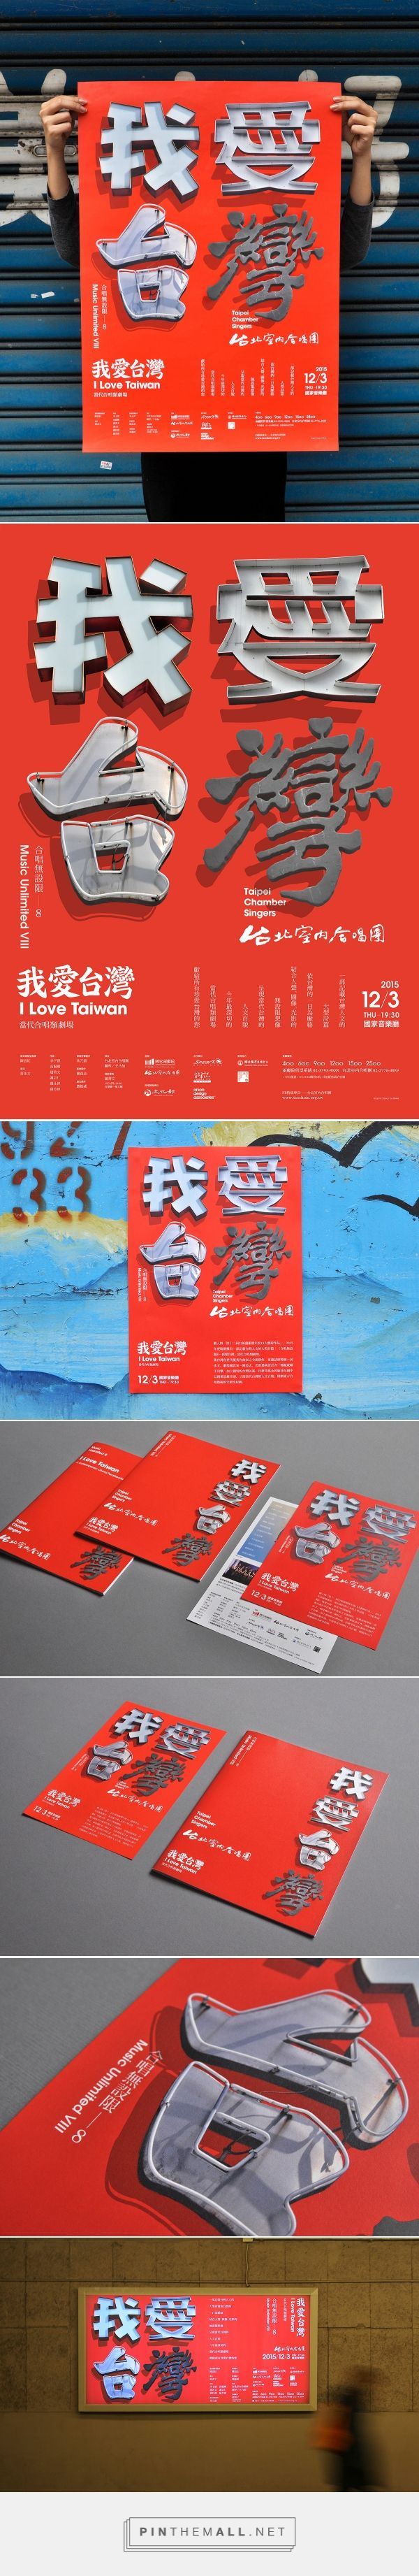 Music unlimited 8 — I Love Taiwan,  behance…